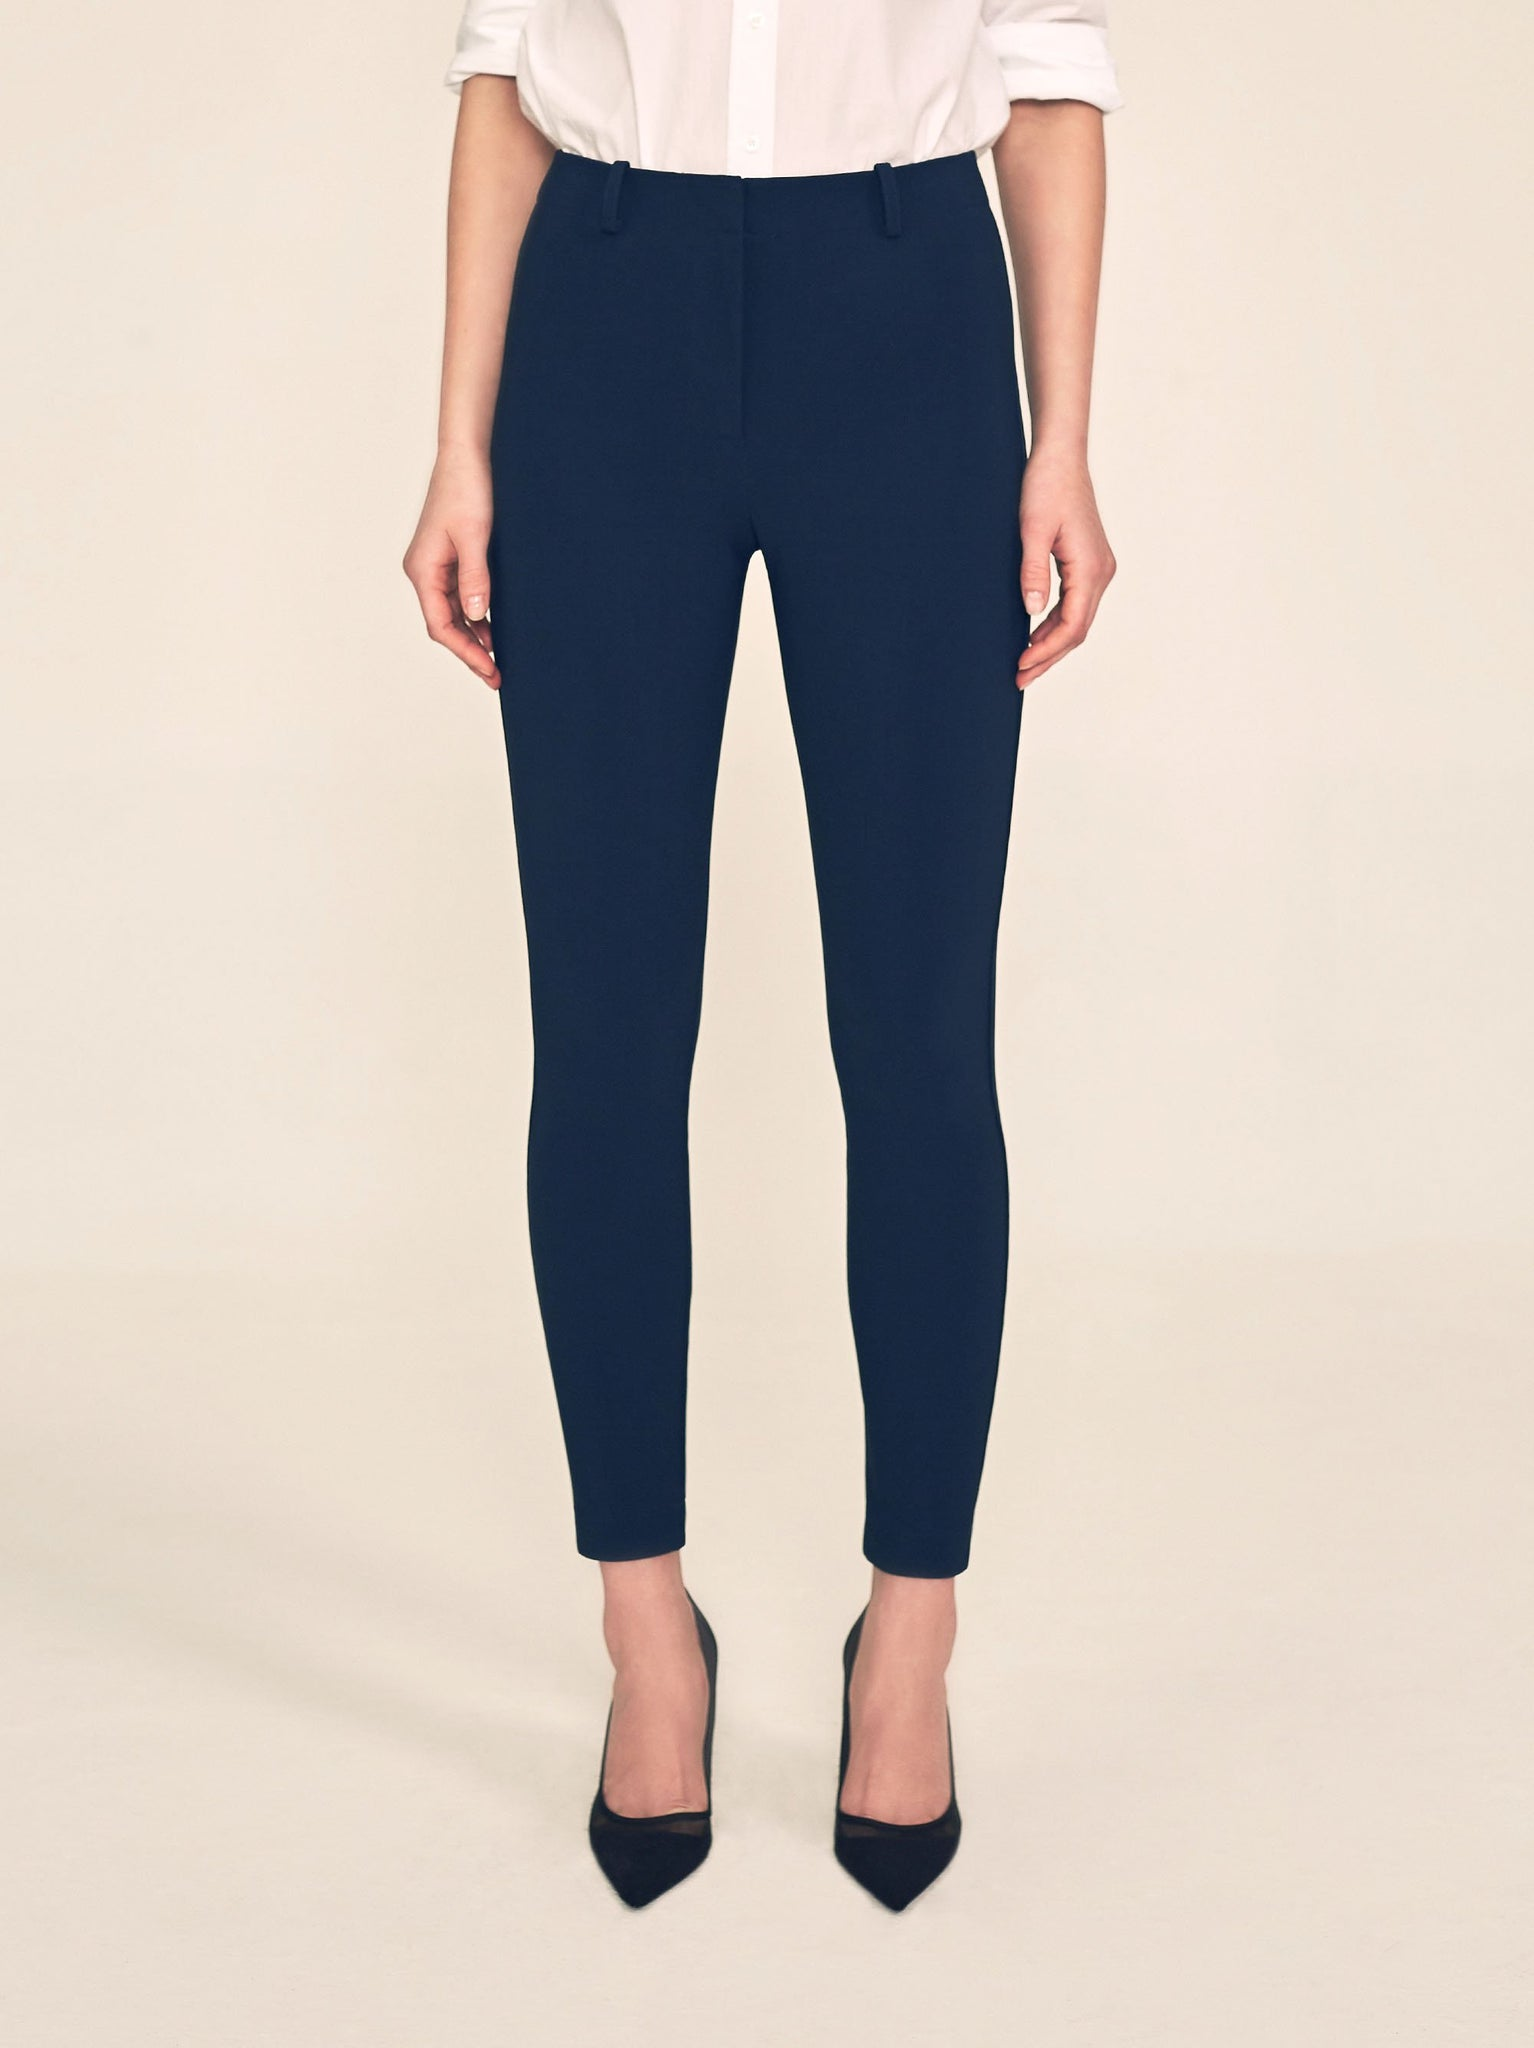 "BIANCA Skinny / 29"" Inseam / Navy / Secondary"